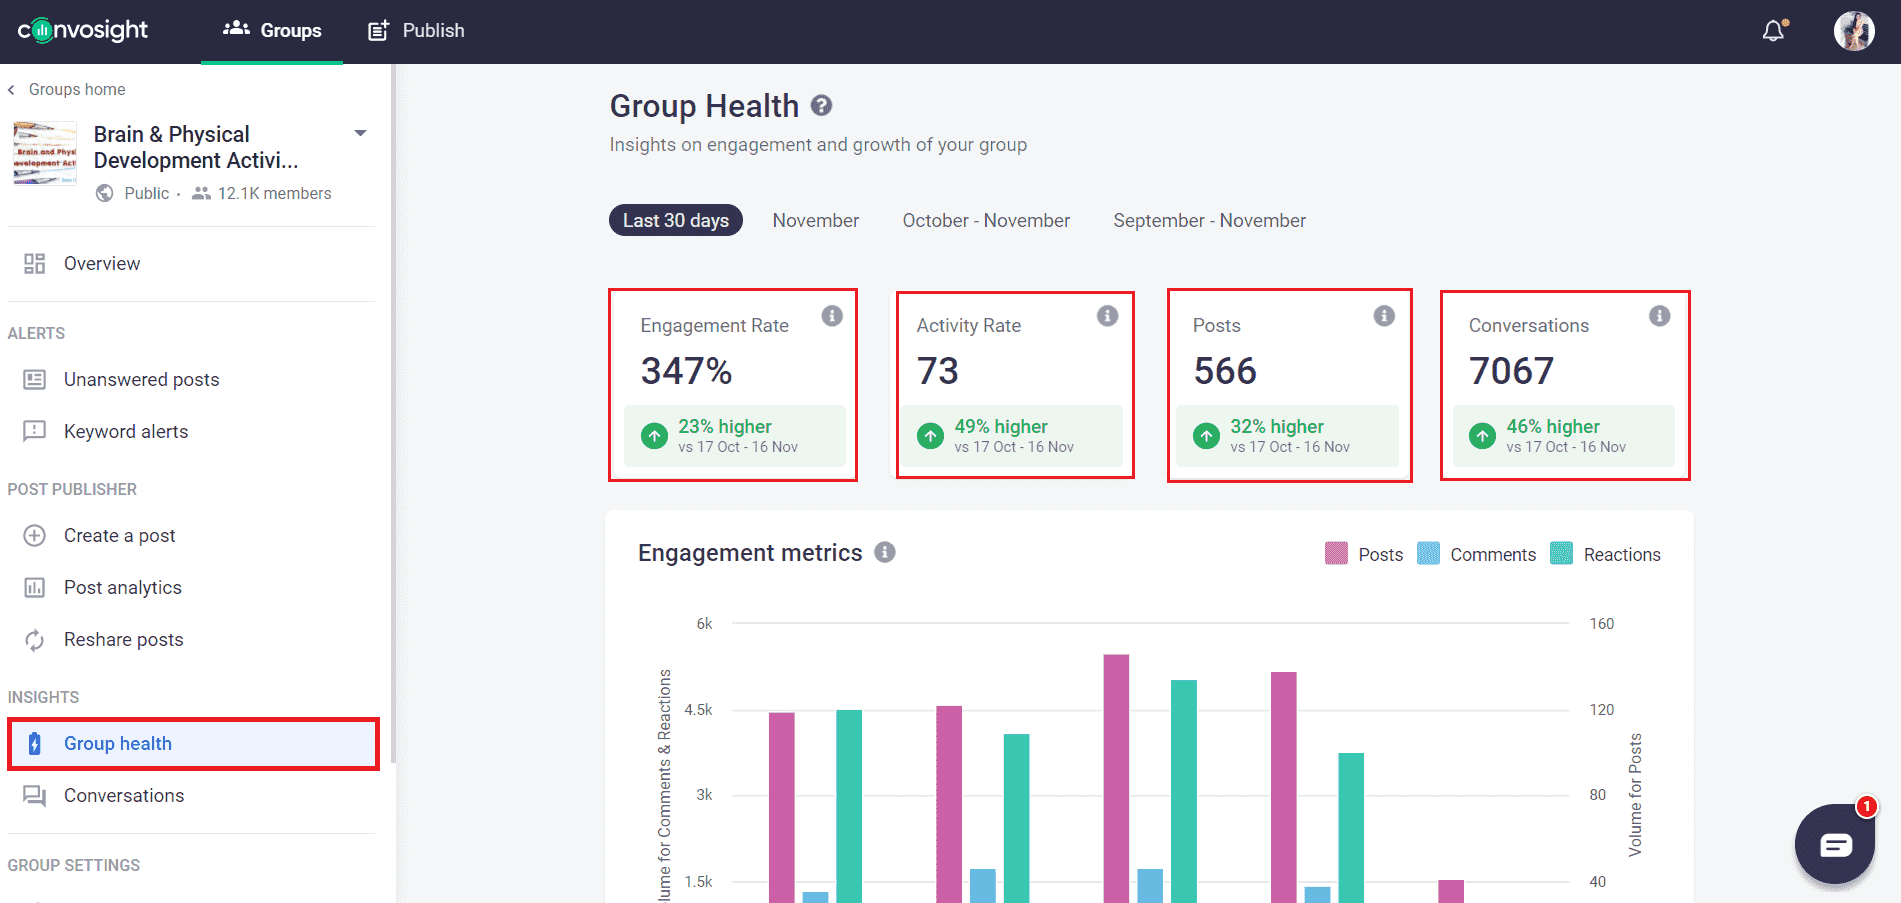 group health dashboard of Convosight